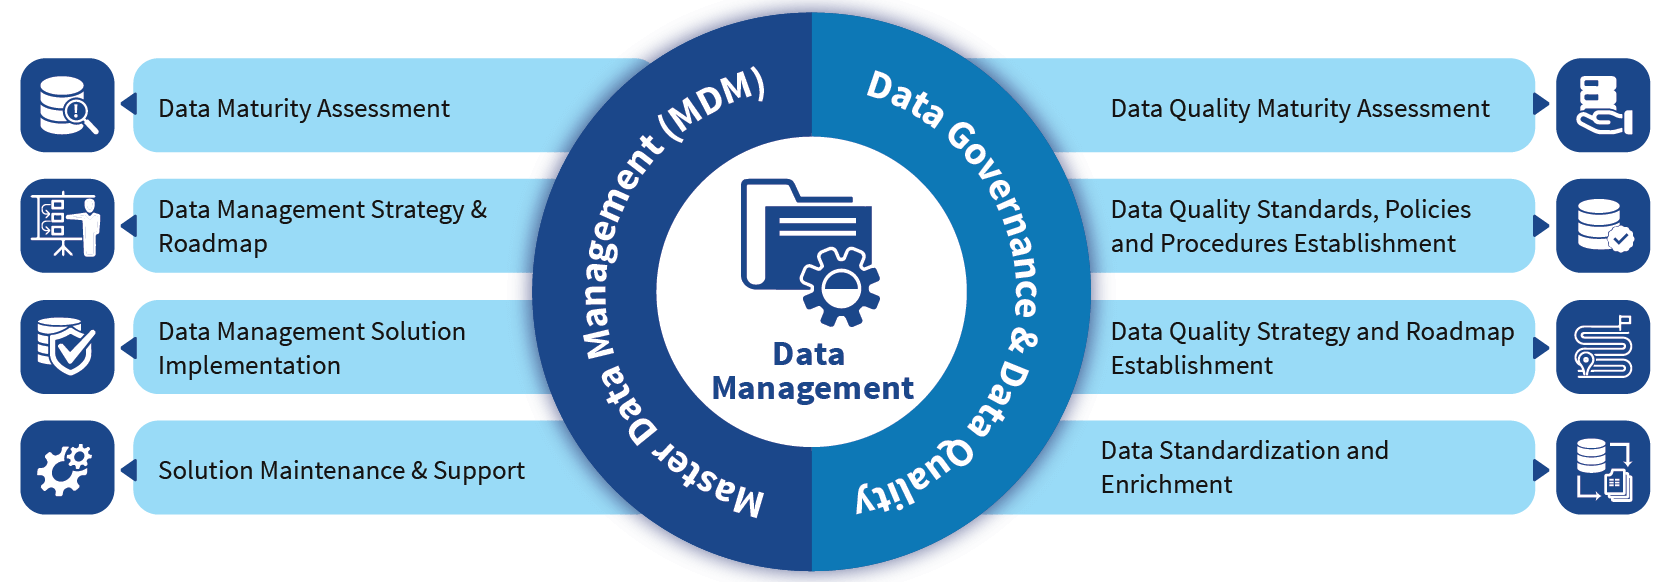 Master Data Management, Data Governance and Data Quality |Alis Software